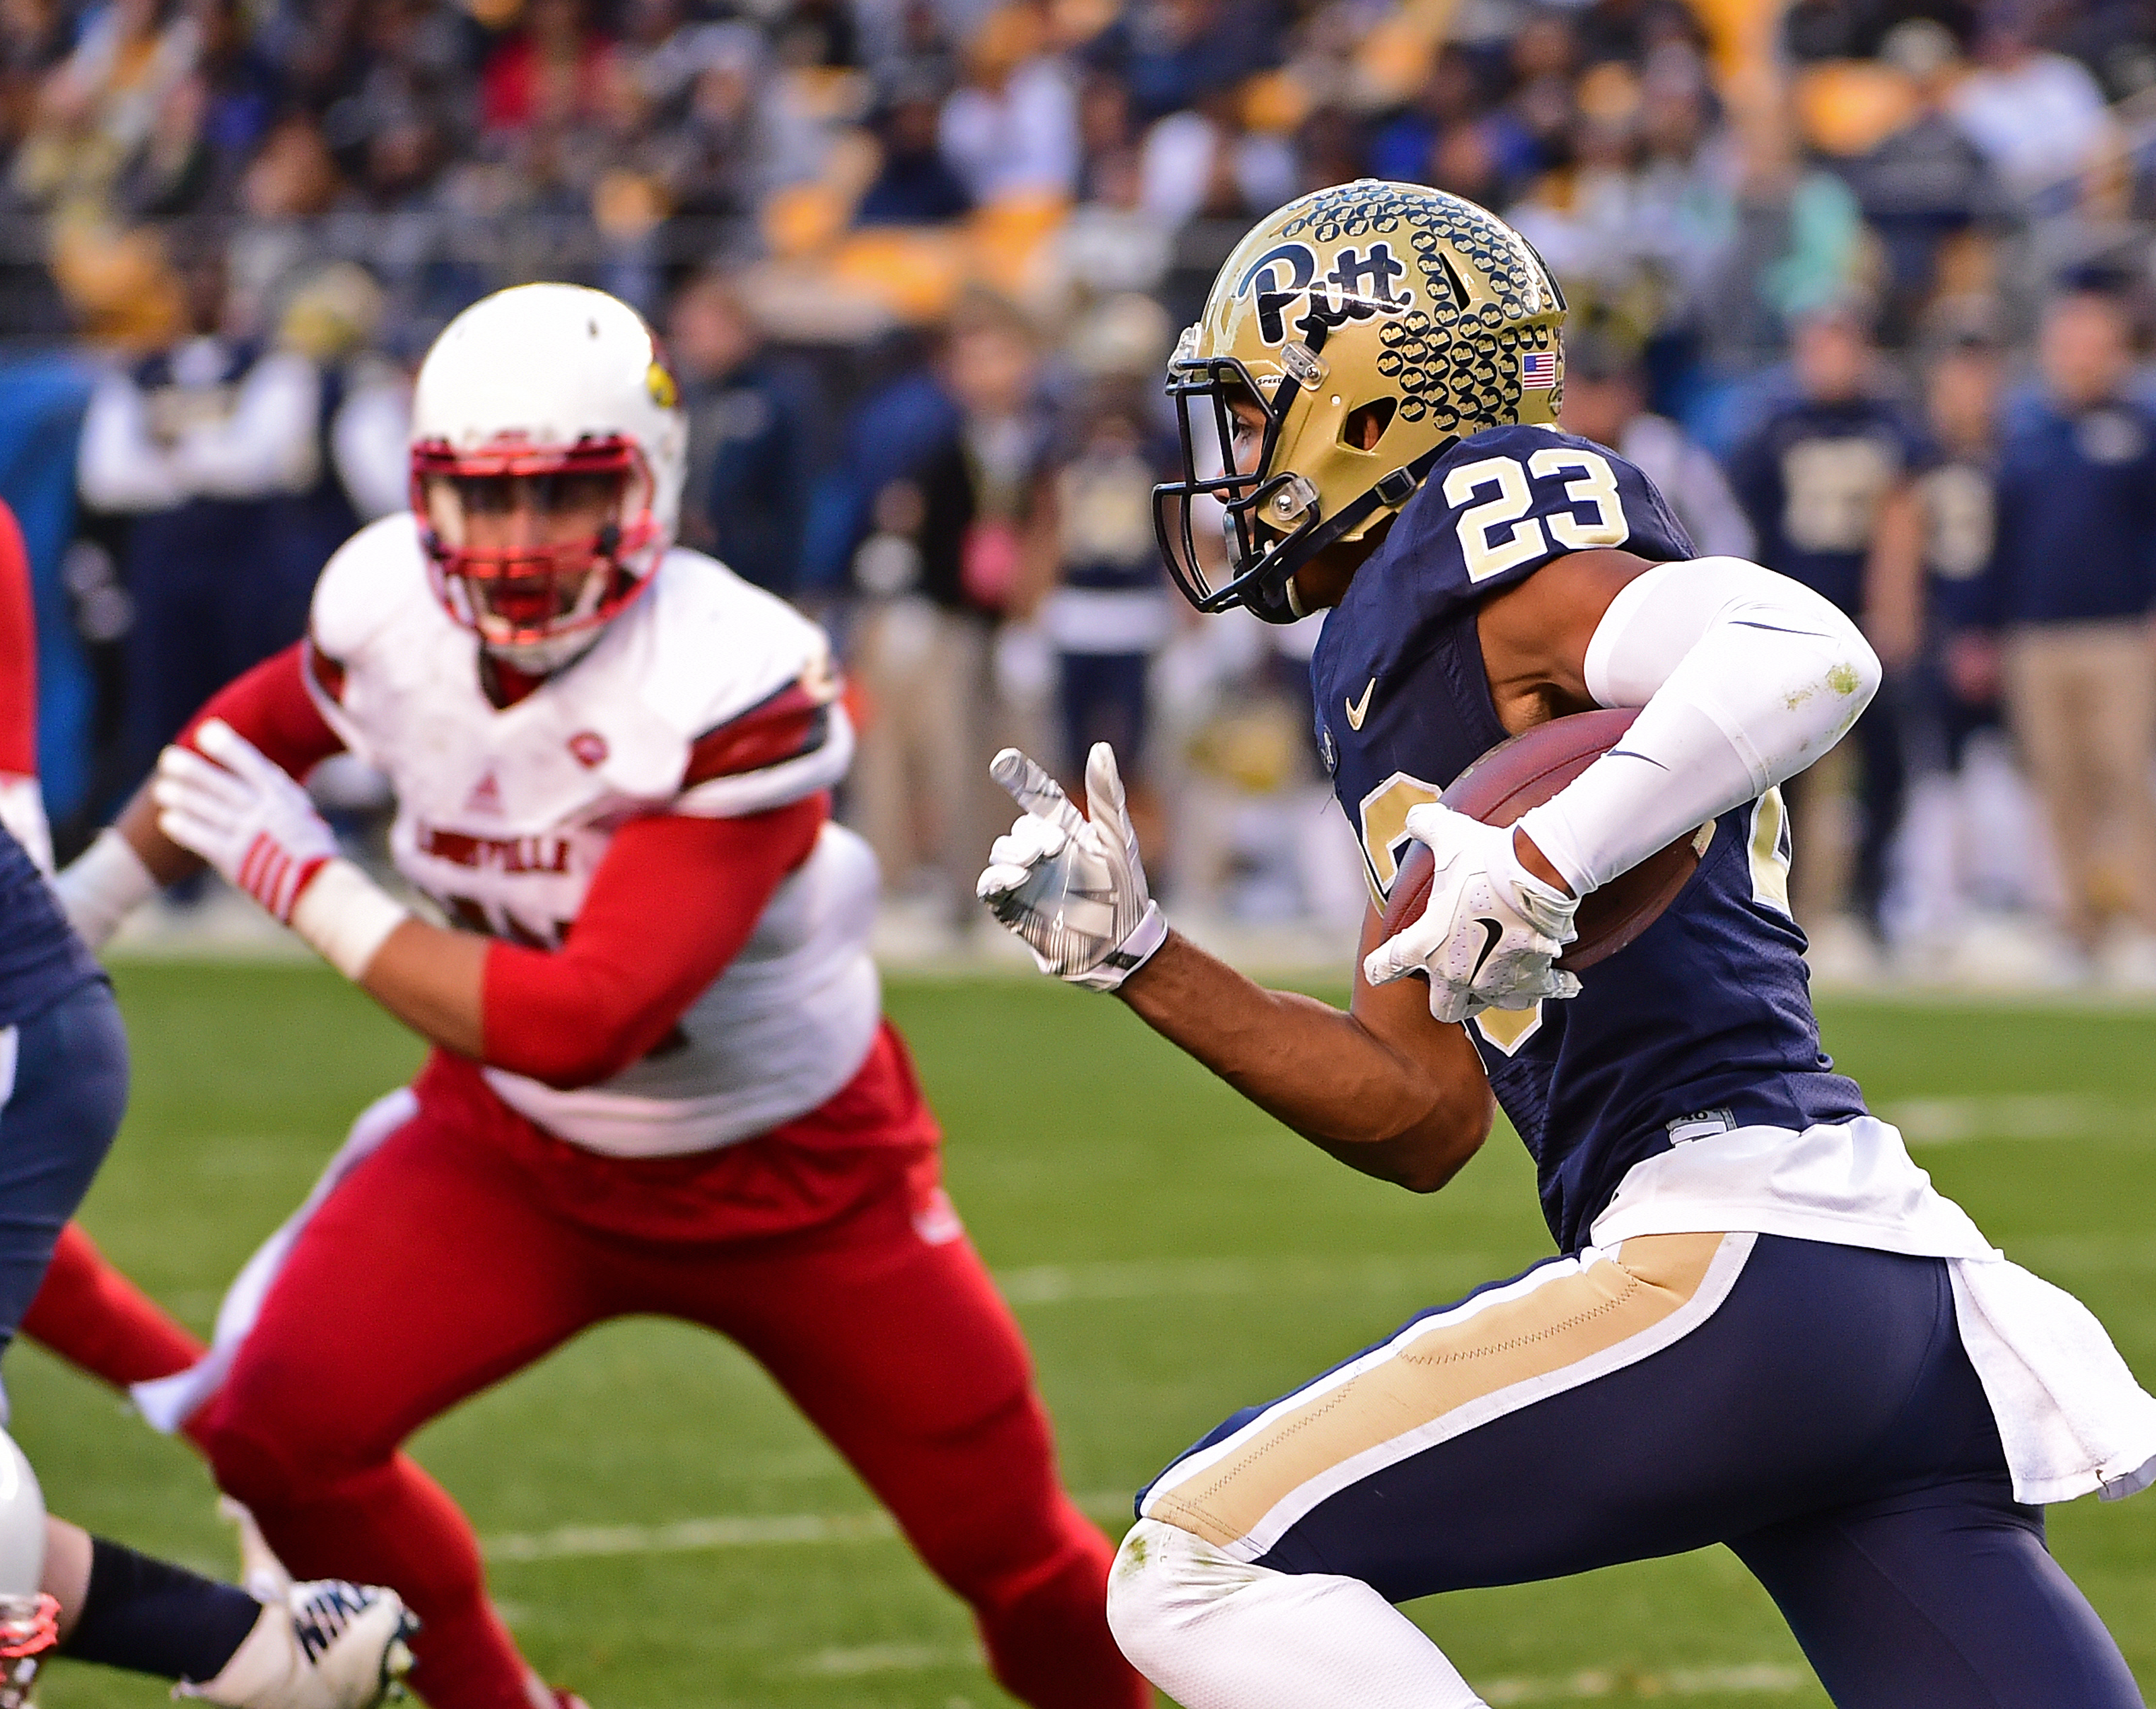 Pittsburgh wide receiver Tyler Boyd (23) runs the ball during the first half of an NCAA collge football game against Louisville, Saturday, Nov. 21, 2015 in Pittsburgh. (AP Photo/Fred Vuich)